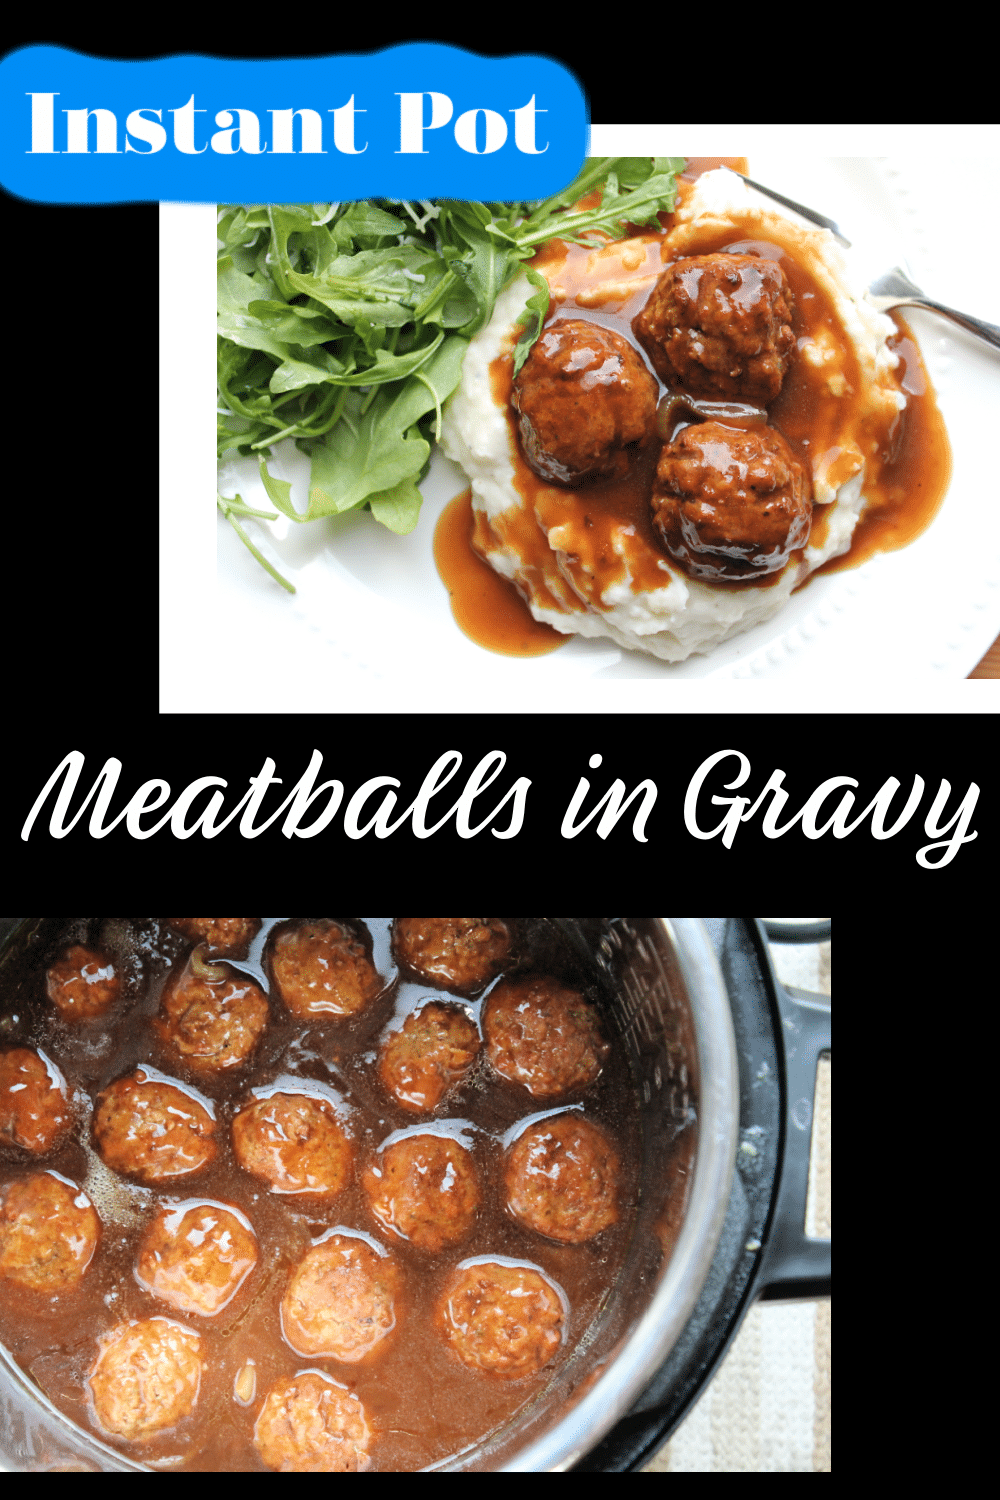 Instant Pot Meatballs in Gravy pin collage